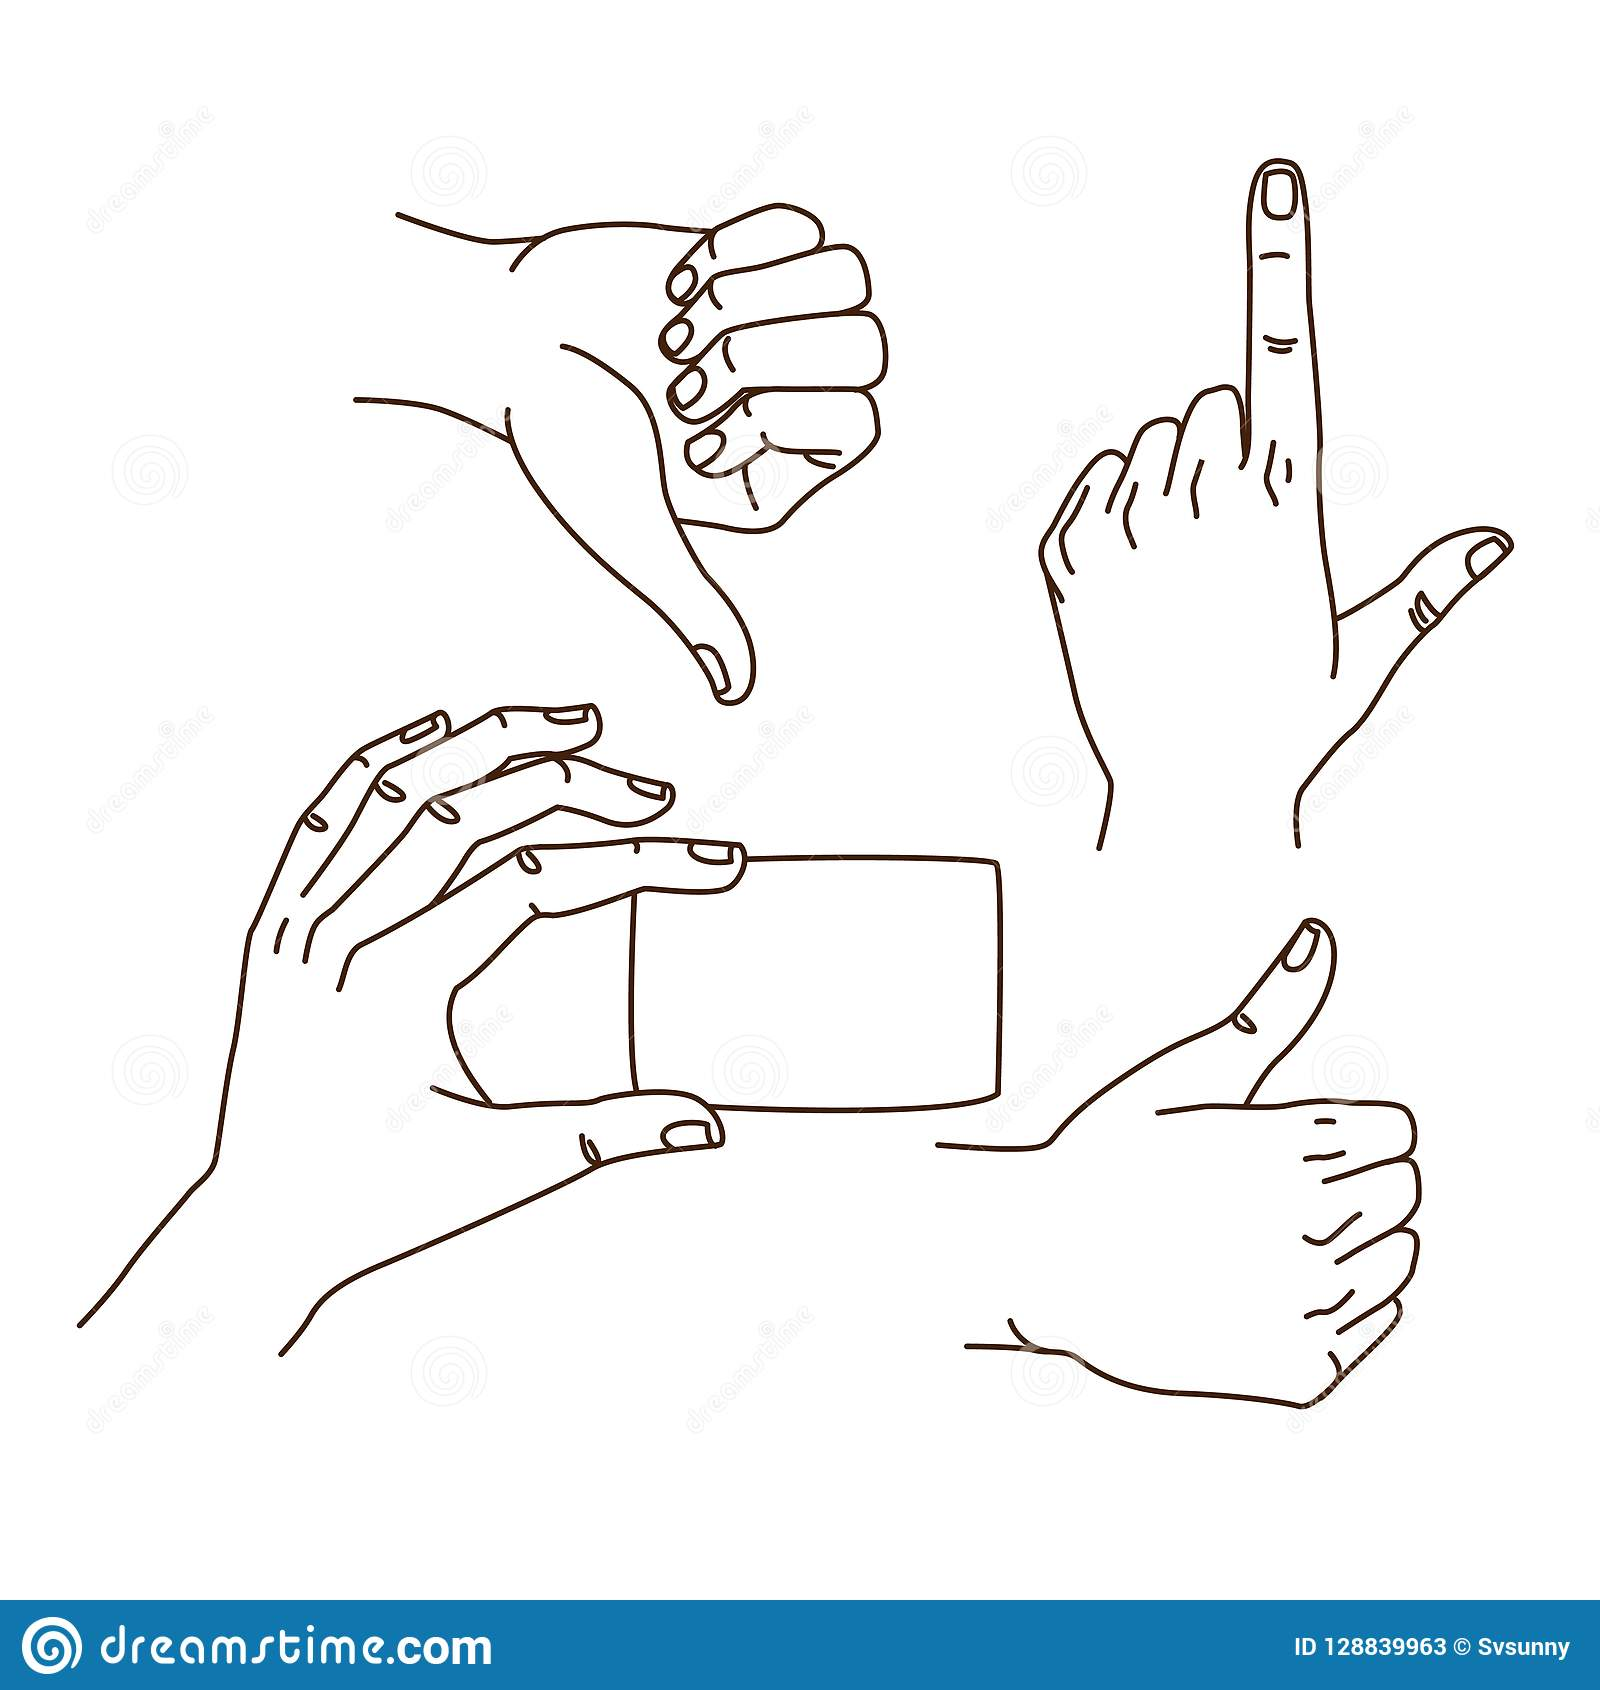 Hands gestures hand drawn set logo design isolated on white